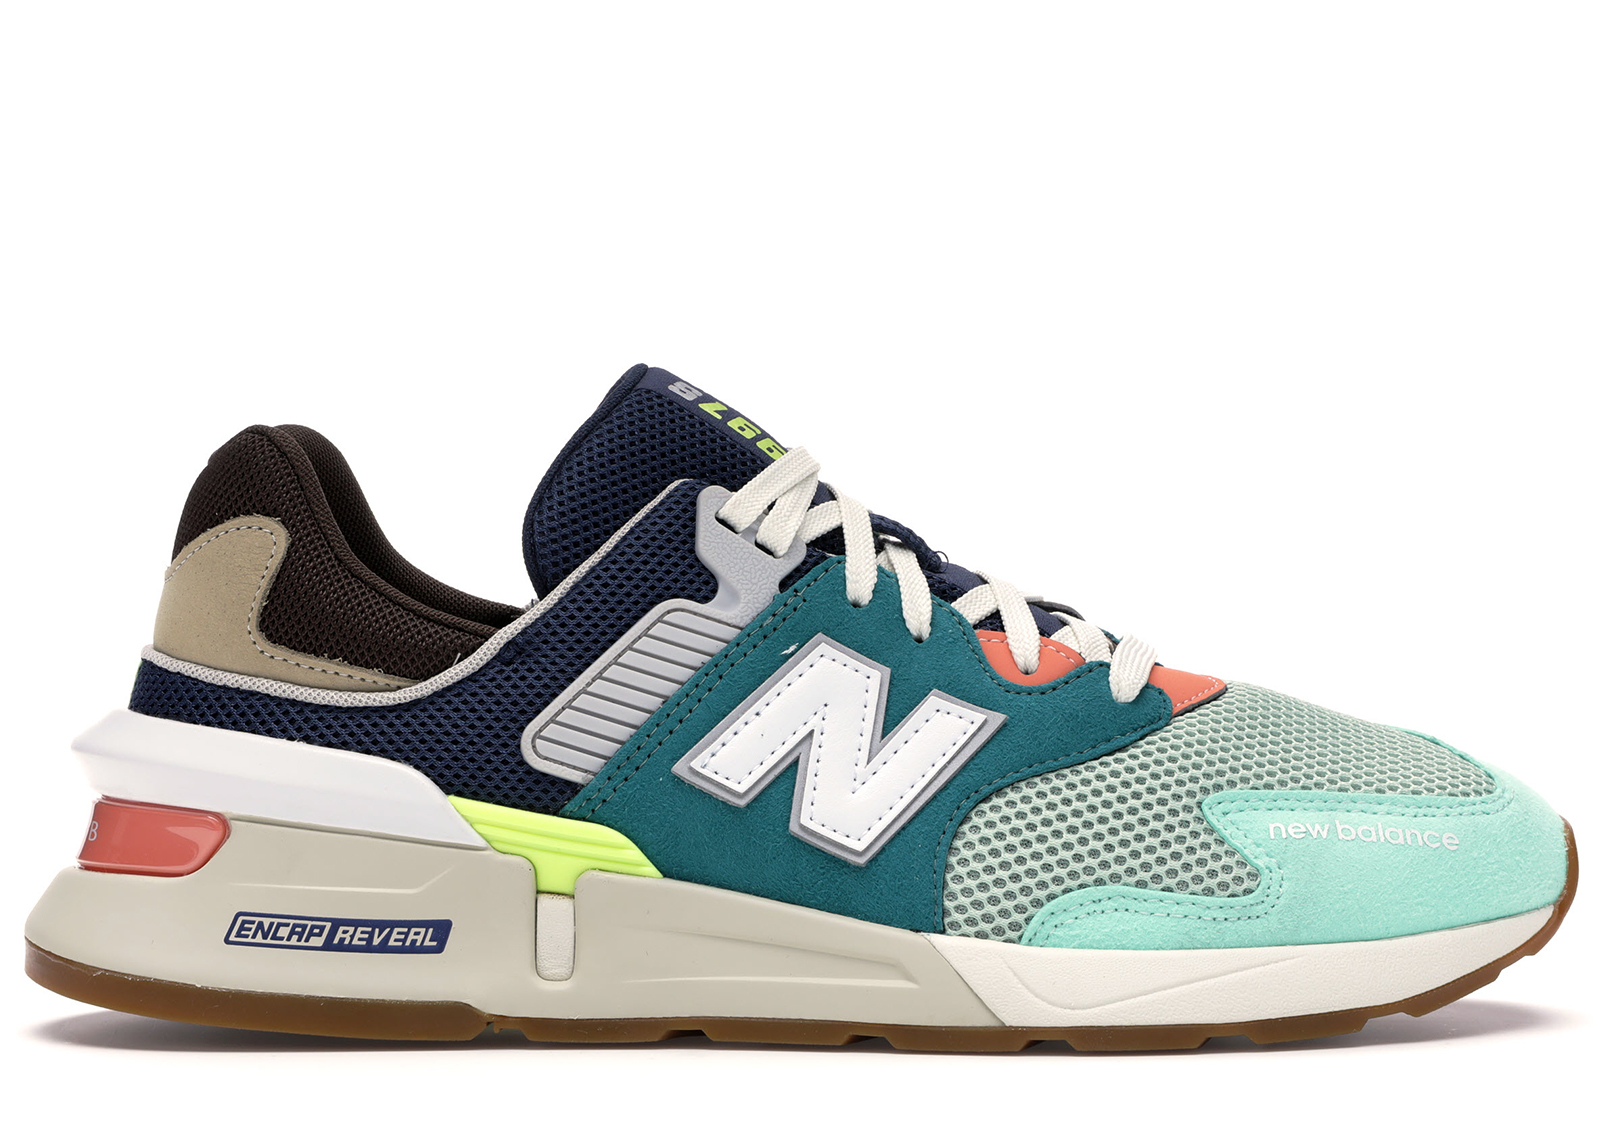 New Balance 997 Sport Teal Brown